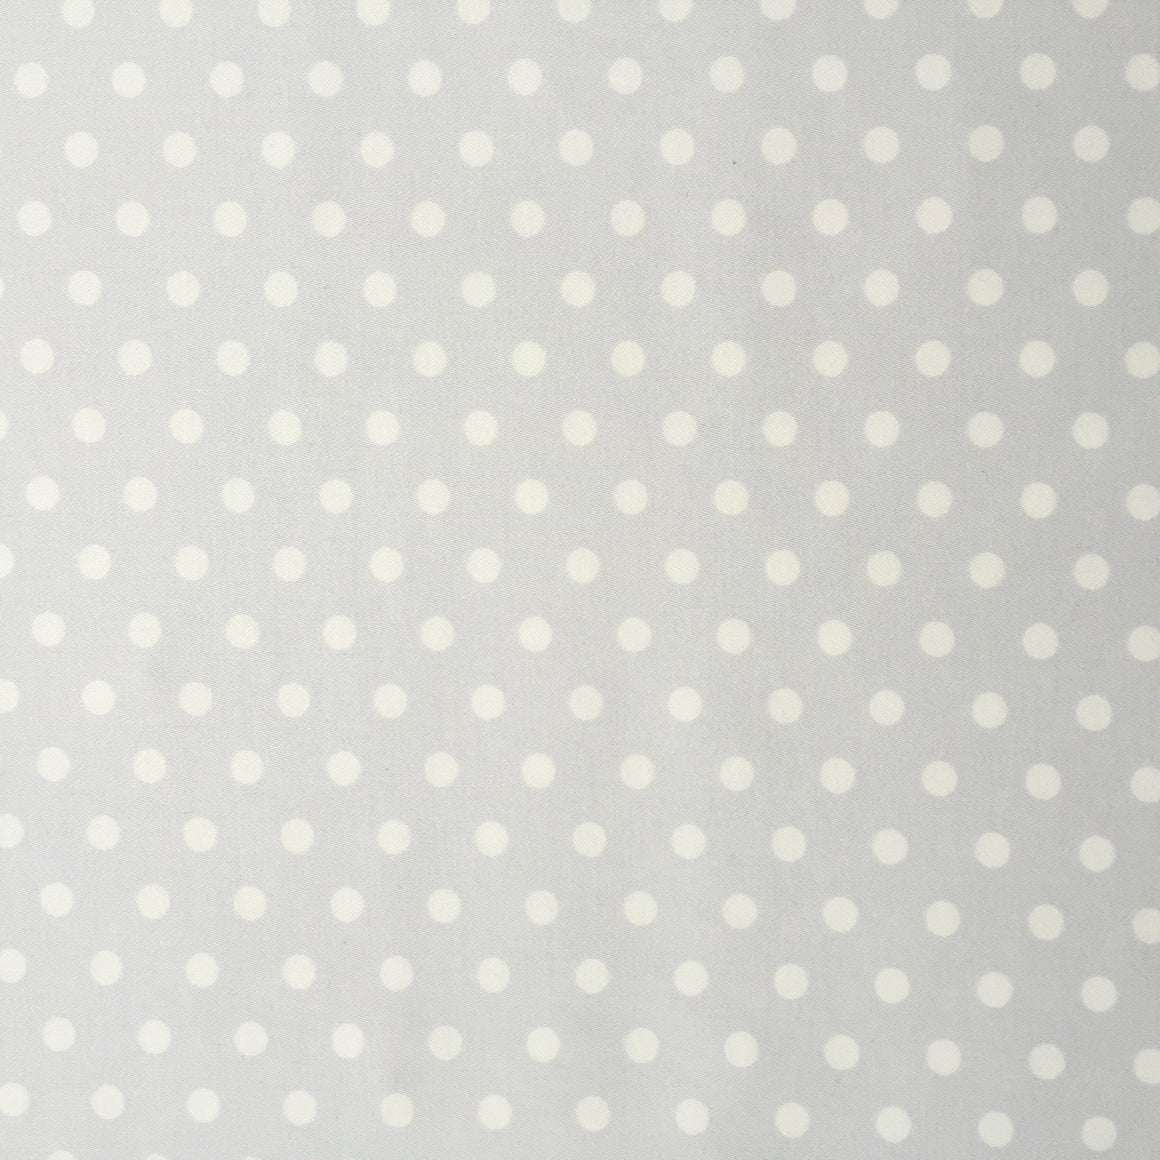 Free Spirit - Tanya Whelan - Petal Sateen - French Dots SATW058- Blue